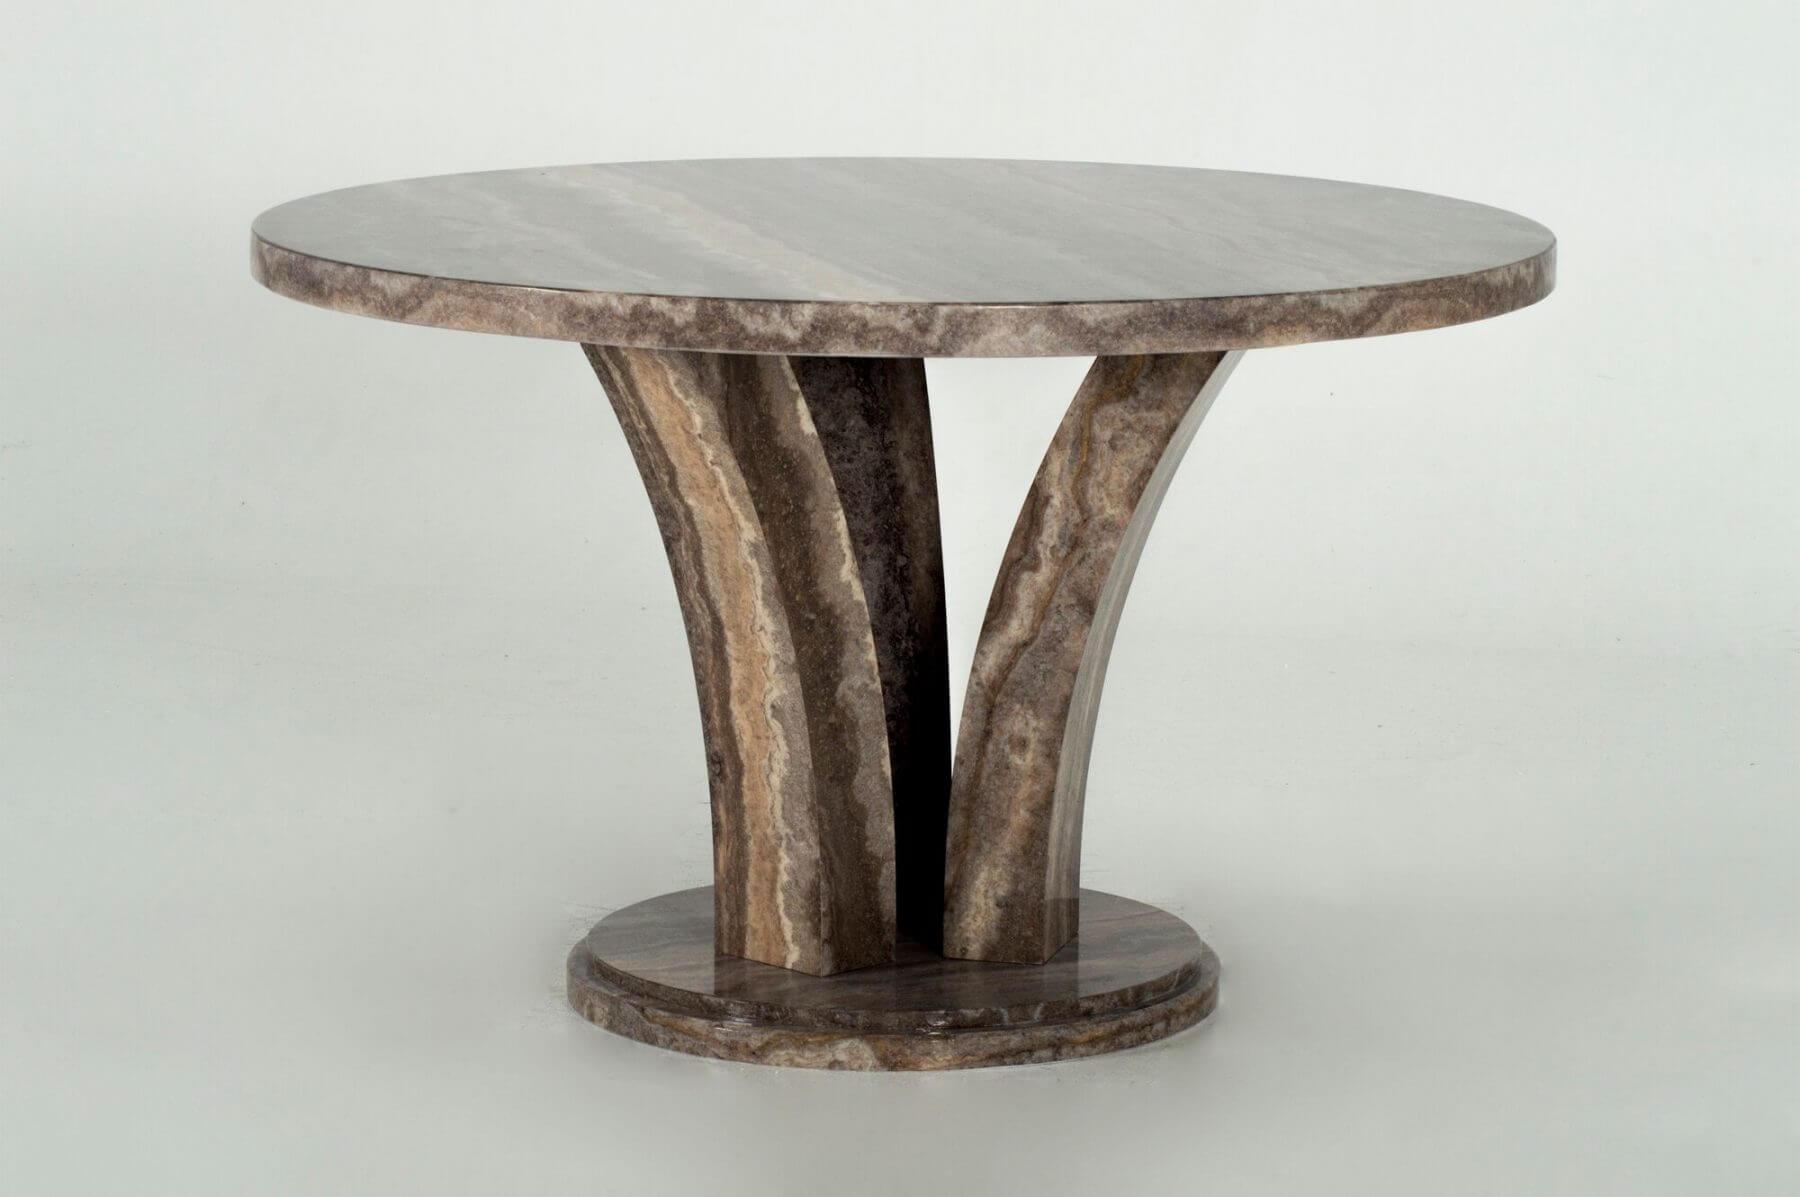 Amalfi Round Marble Dining Table Grey 2